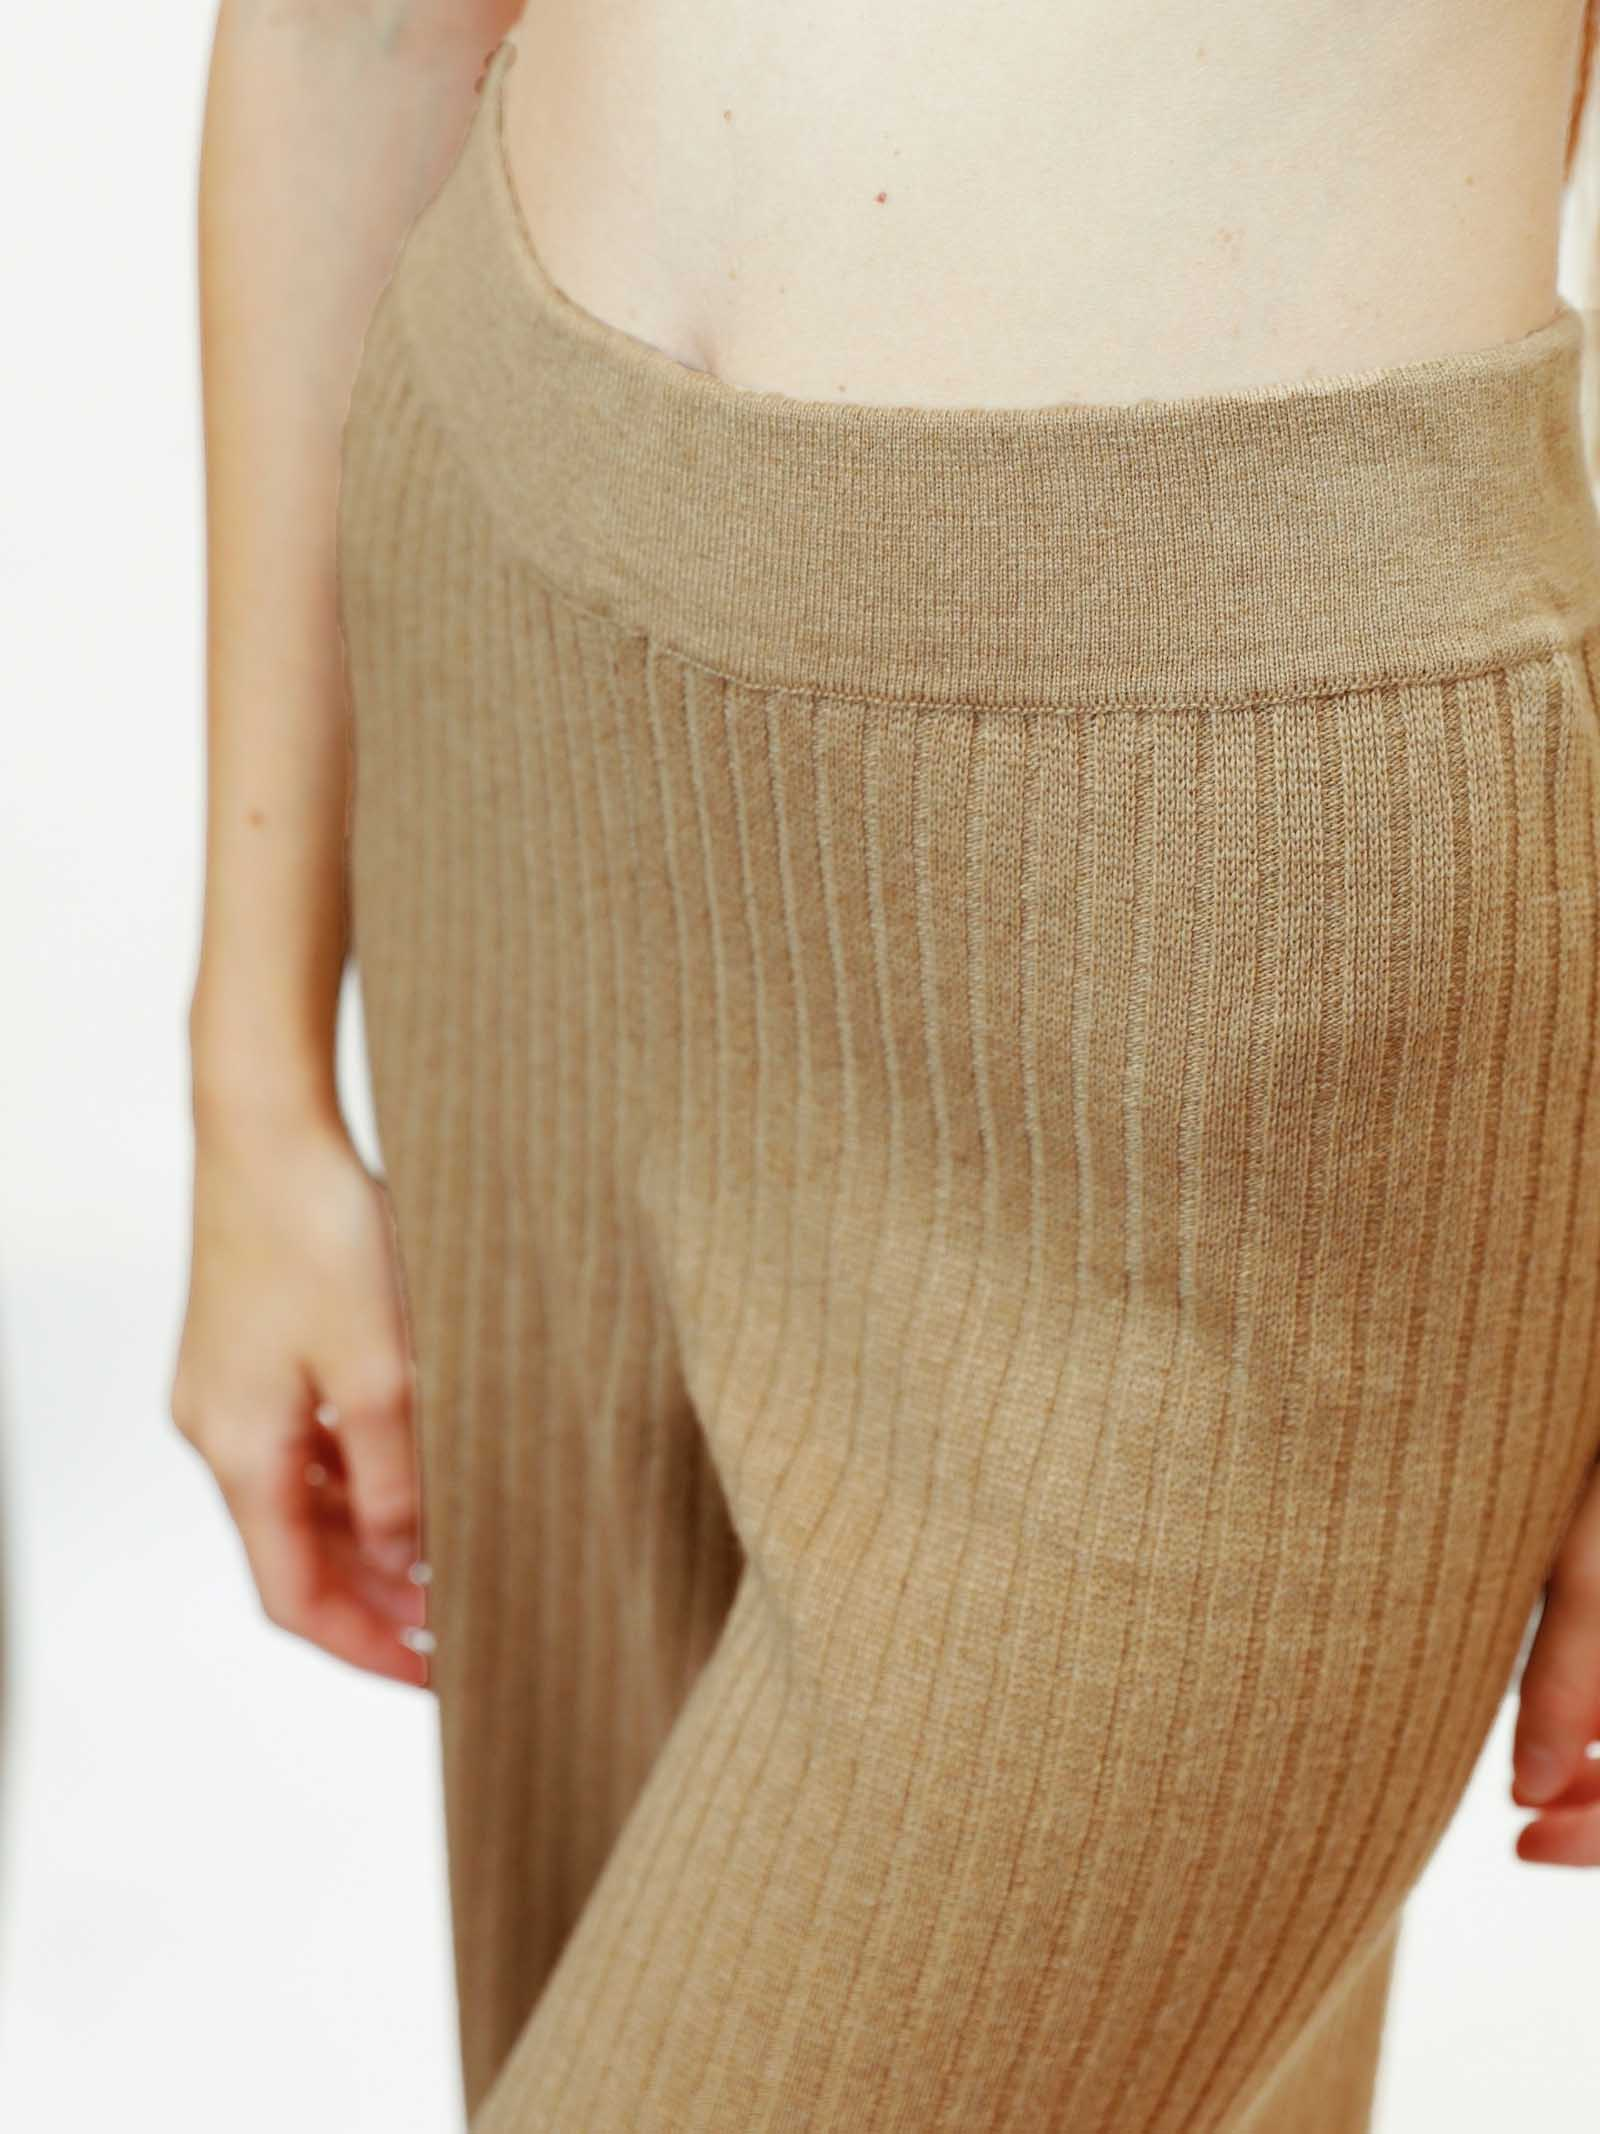 Women's Clothing Trousers Re-volution in Beige Wool Blend with Elastic Waistband Maliparmi | Skirts and Pants | JH74707051812035